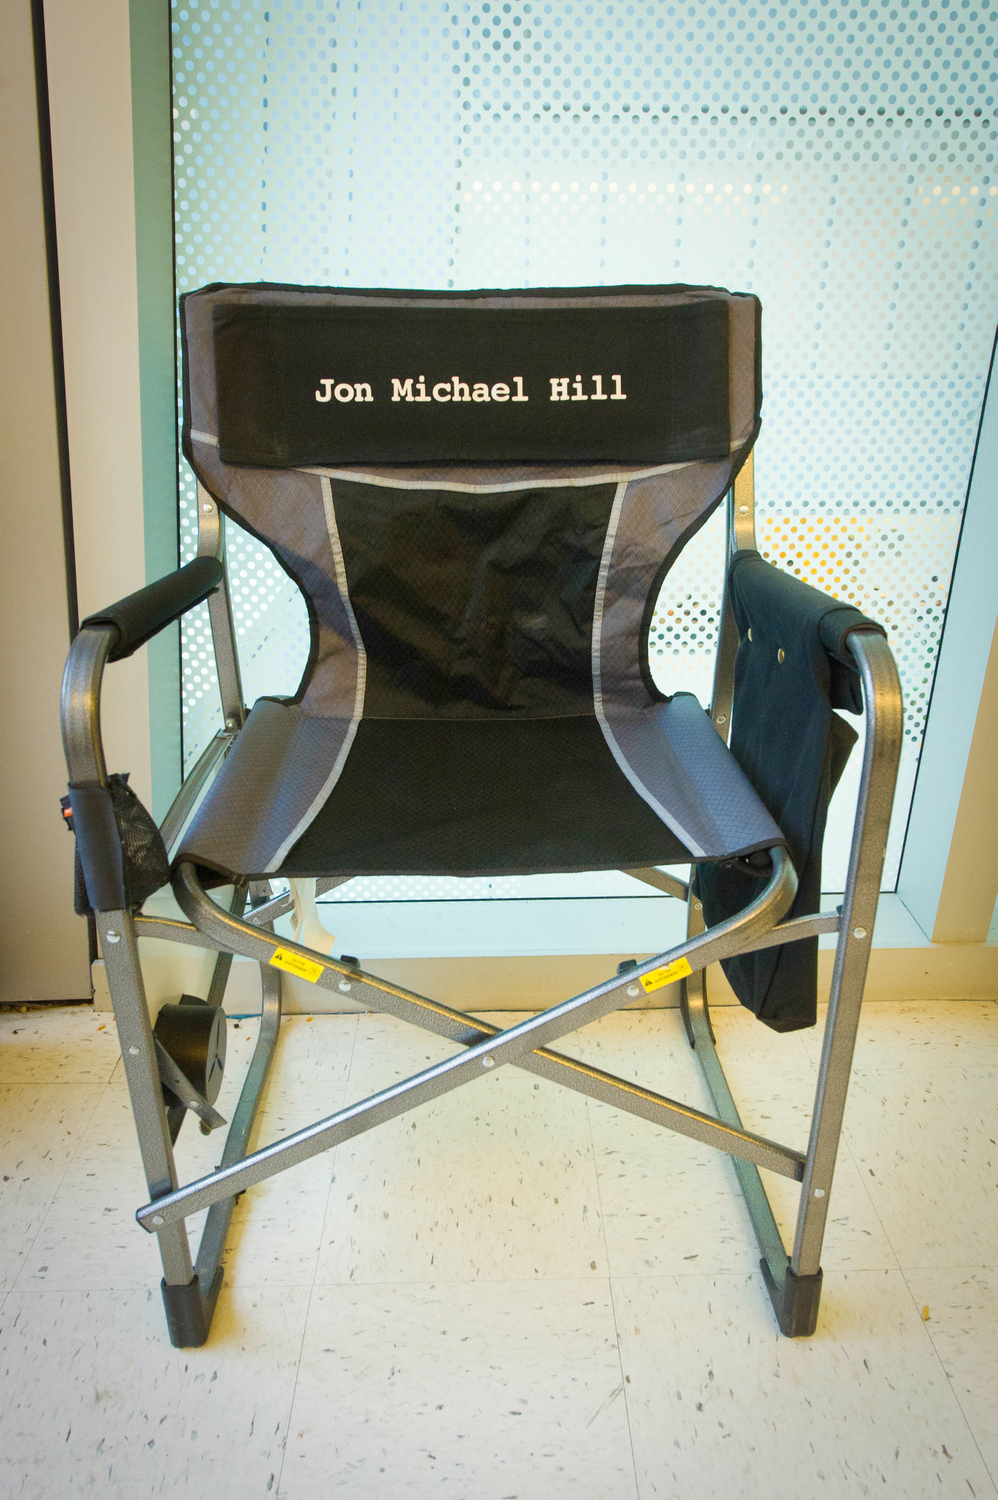 Jon Michael Hill's chair on set